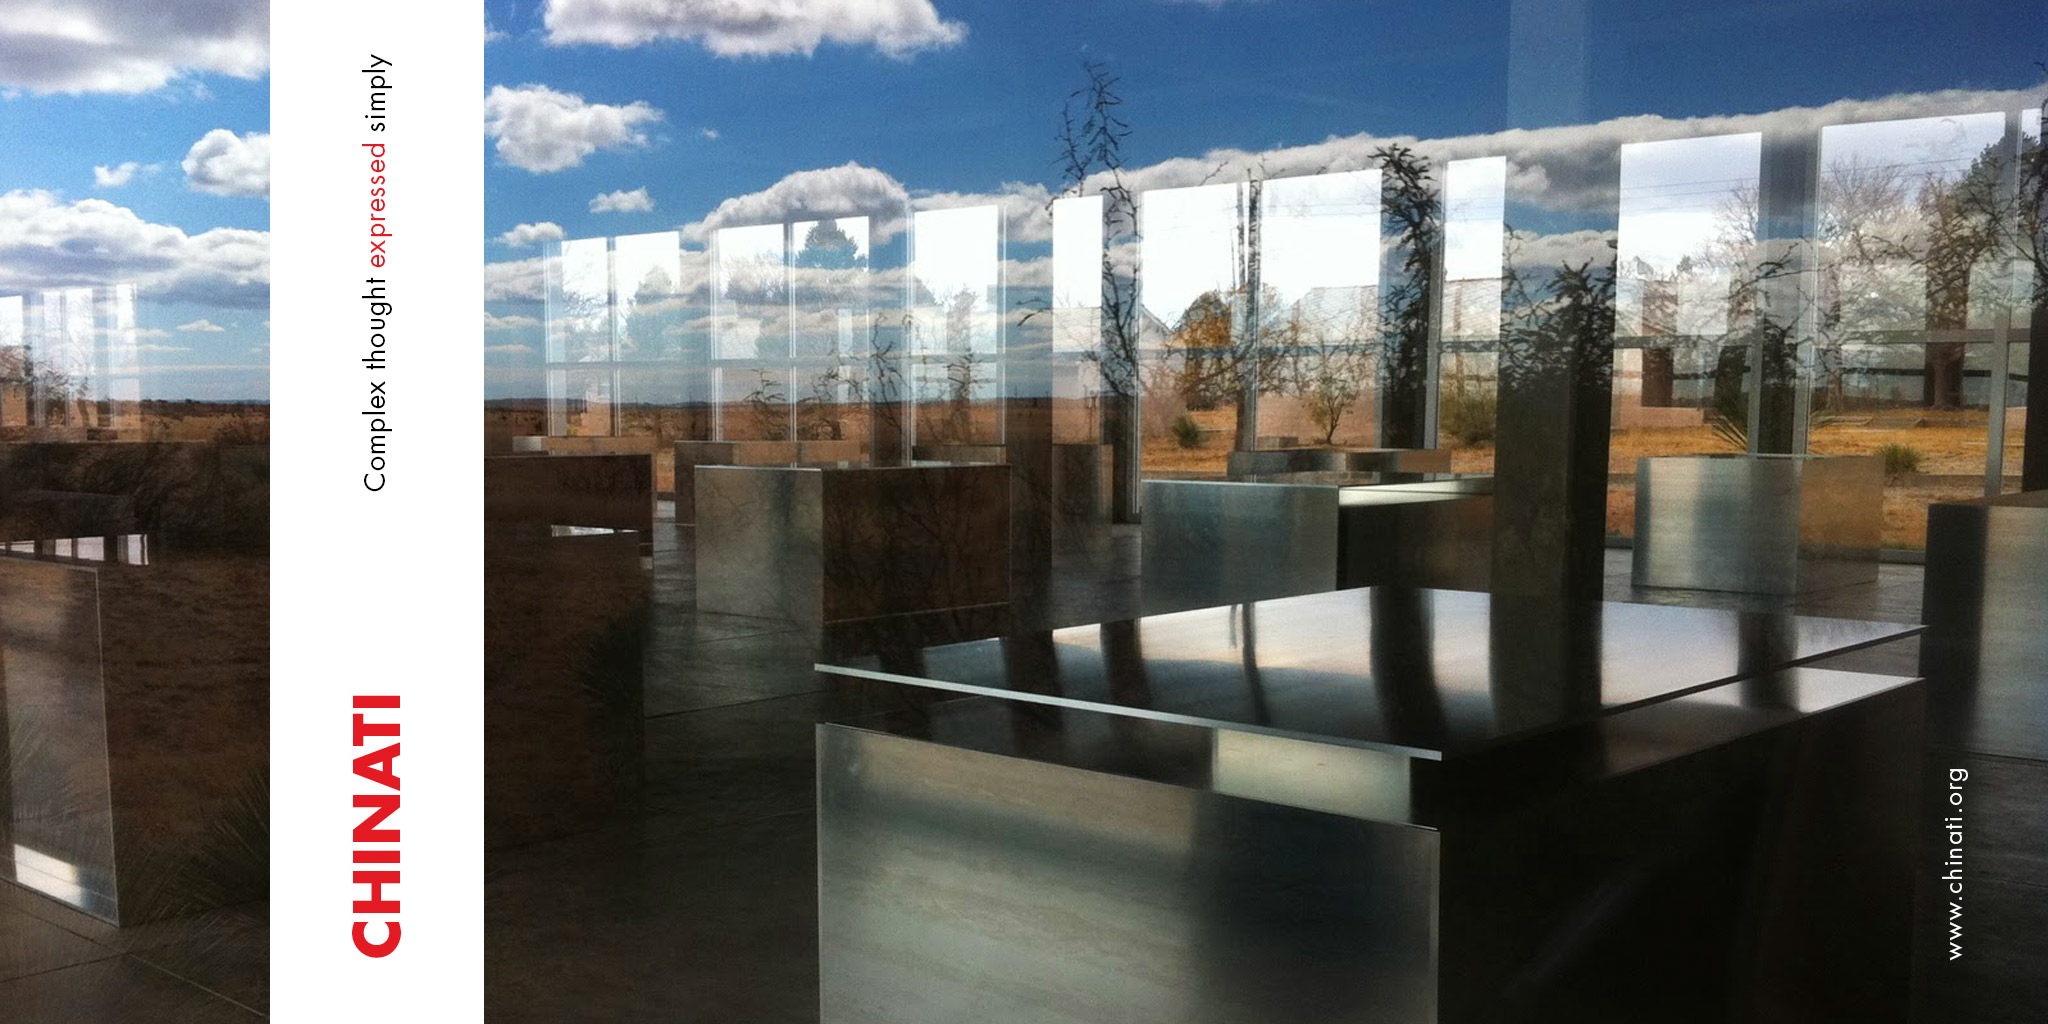 ADVERTISING  Chinati Foundation  The iconic home, gallery and studio of Donad Judd's in Marfa is the setting for this simple but layered ad. A stylistic and reflective photo captures sky, light and most of all, Judd's mesmerizing sculptures within.